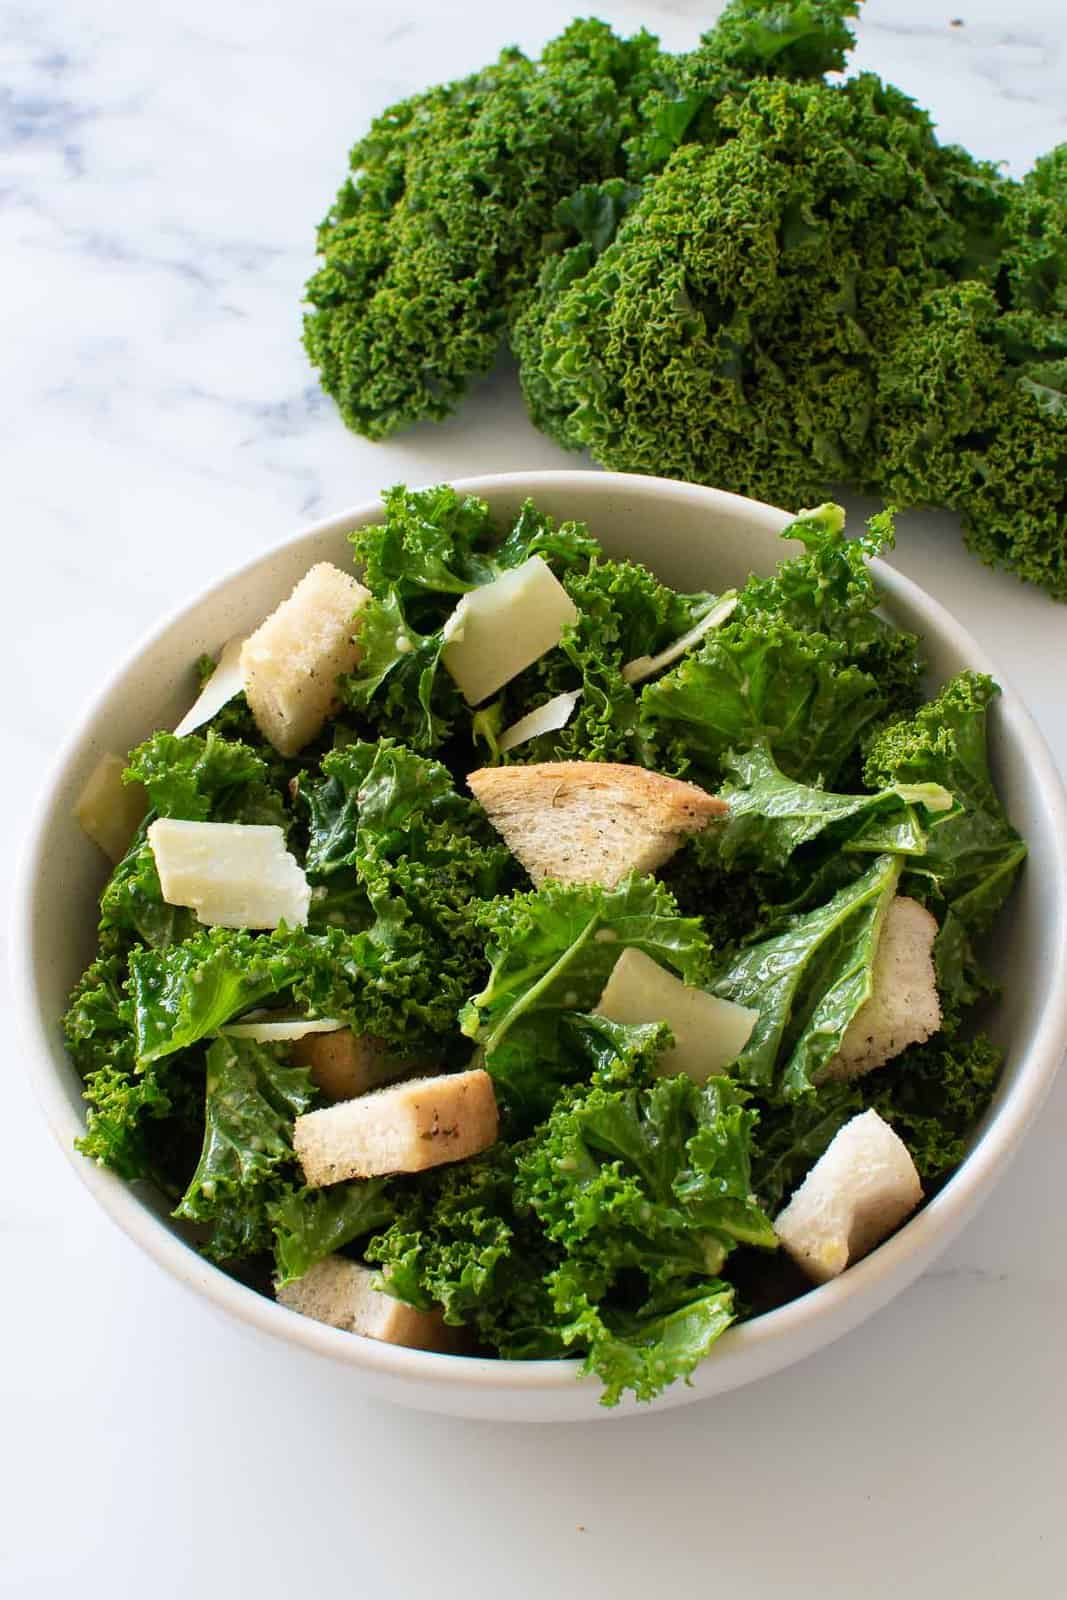 A bowl of kale Caesar salad with Parmesan and croutons.